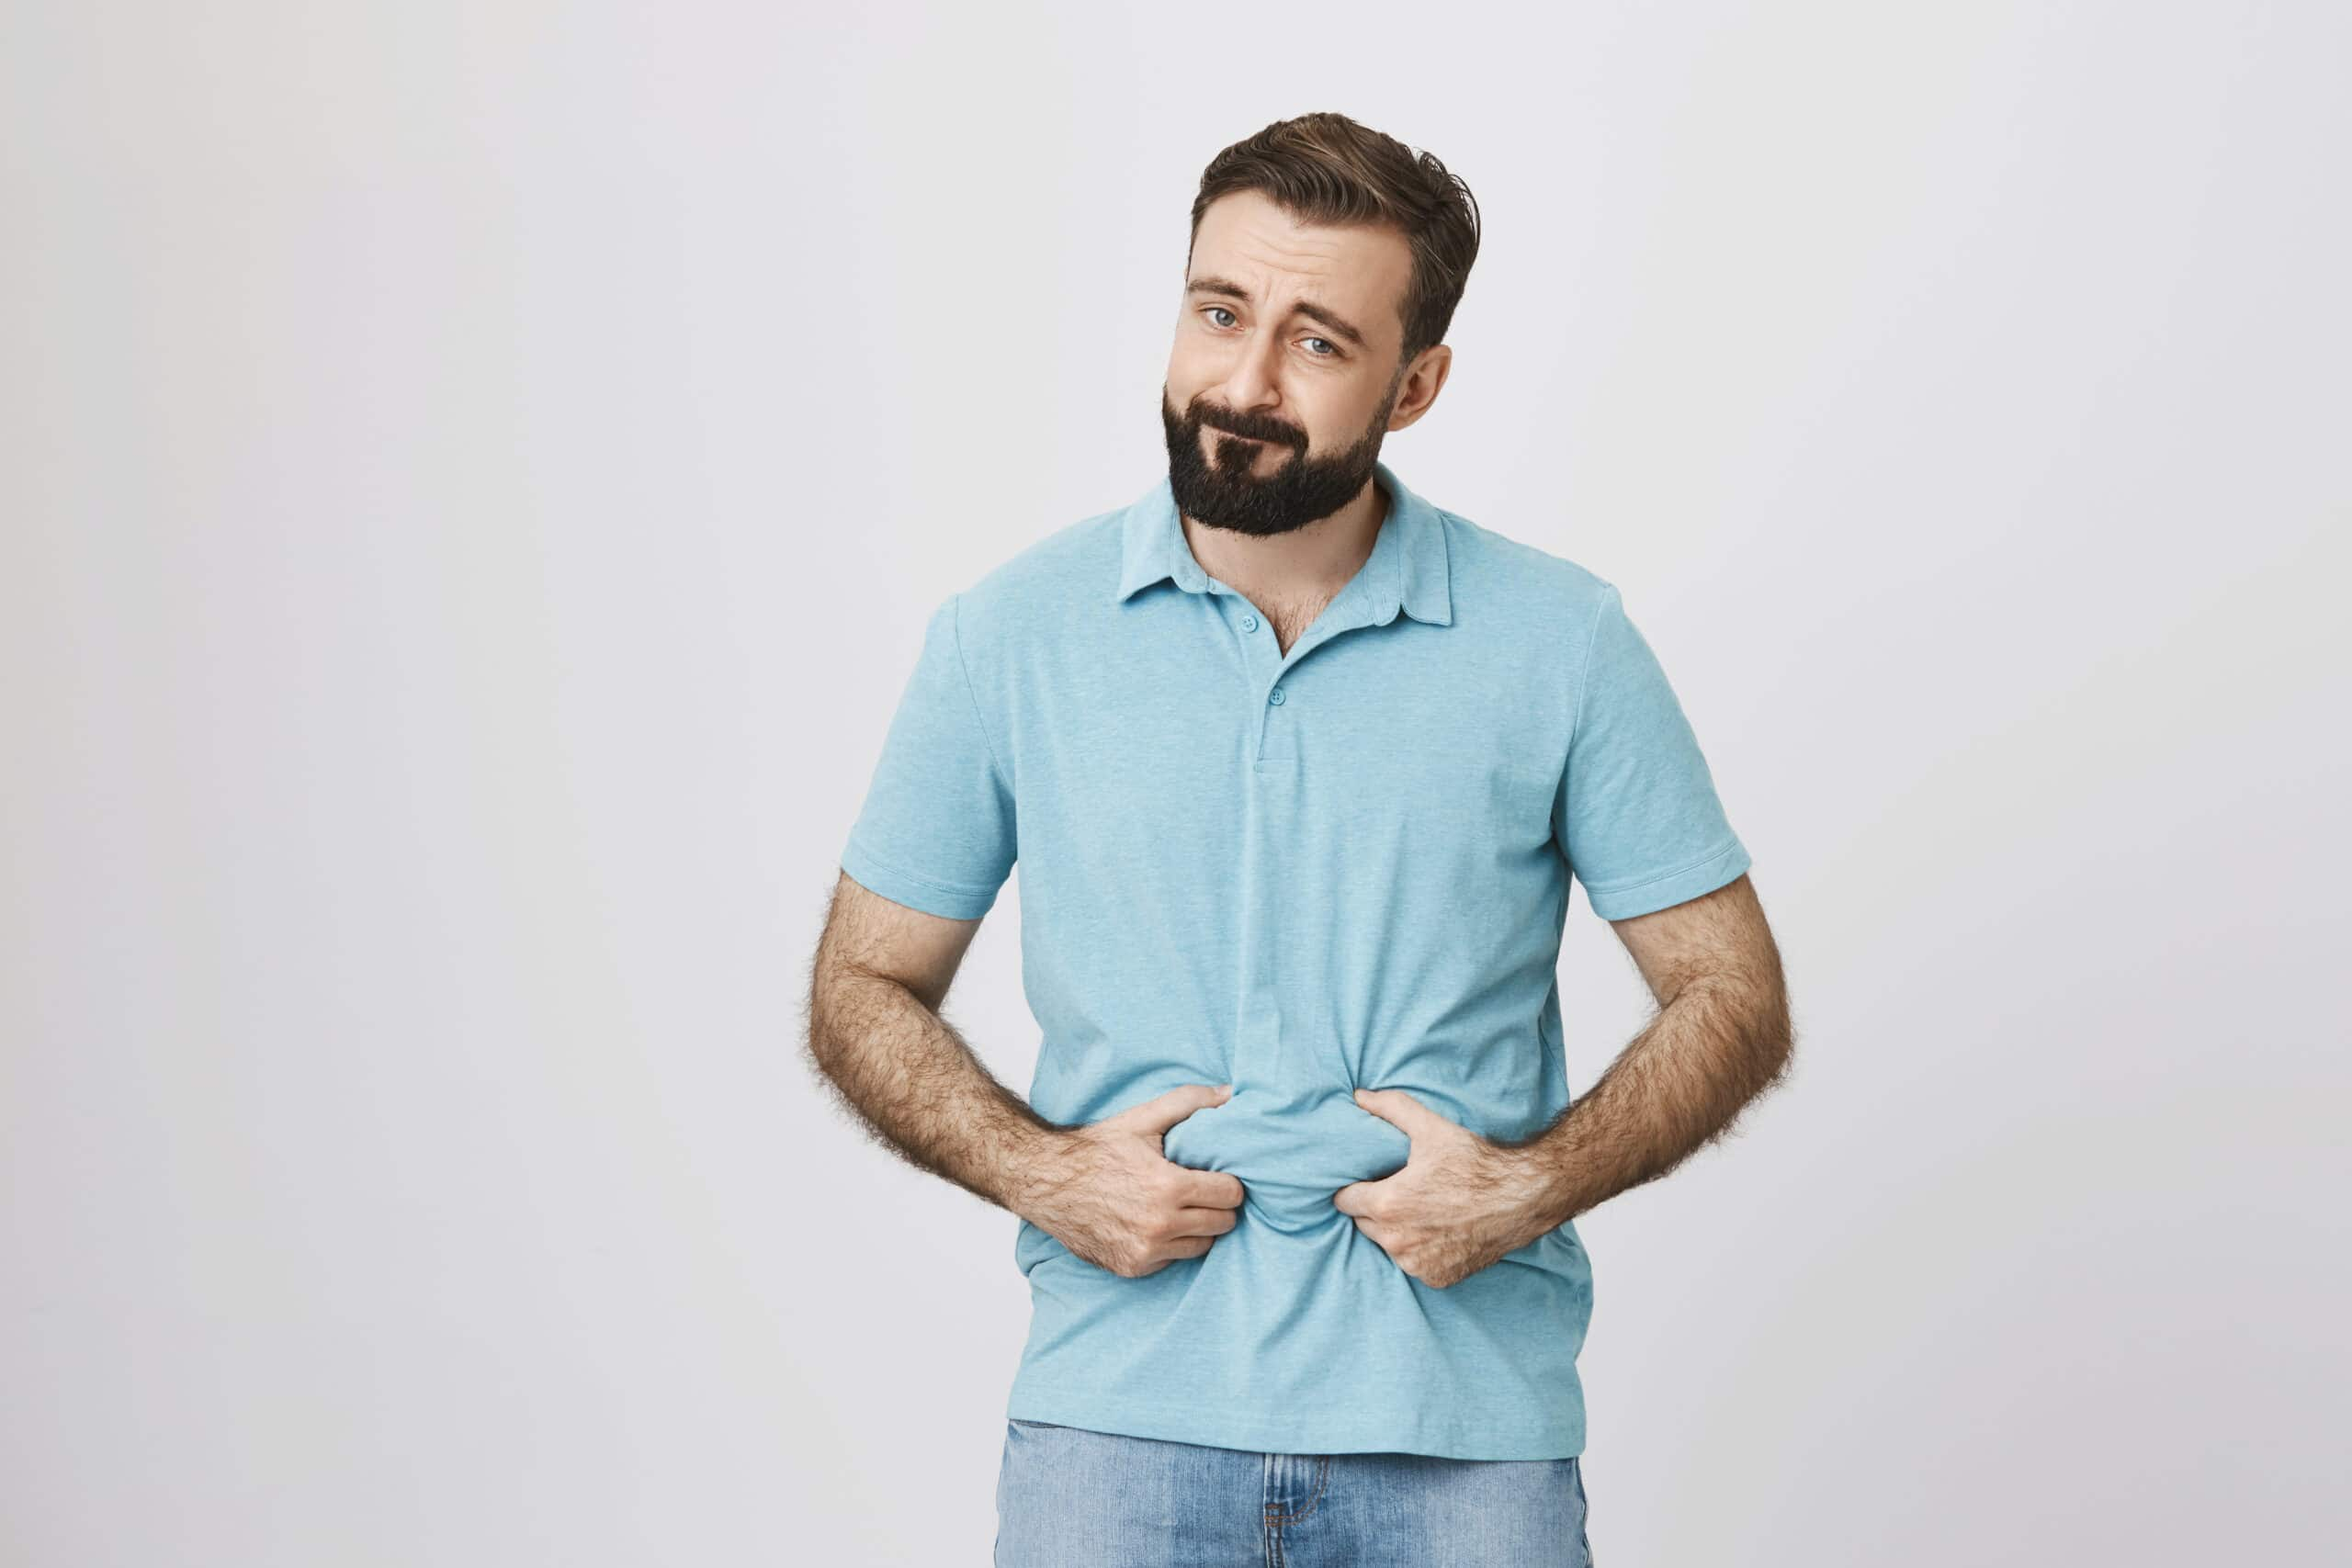 Picture of a bearded handsome man showing his beer belly over white background. Person is bothered because of his extra weight so he decides to sit on diet.